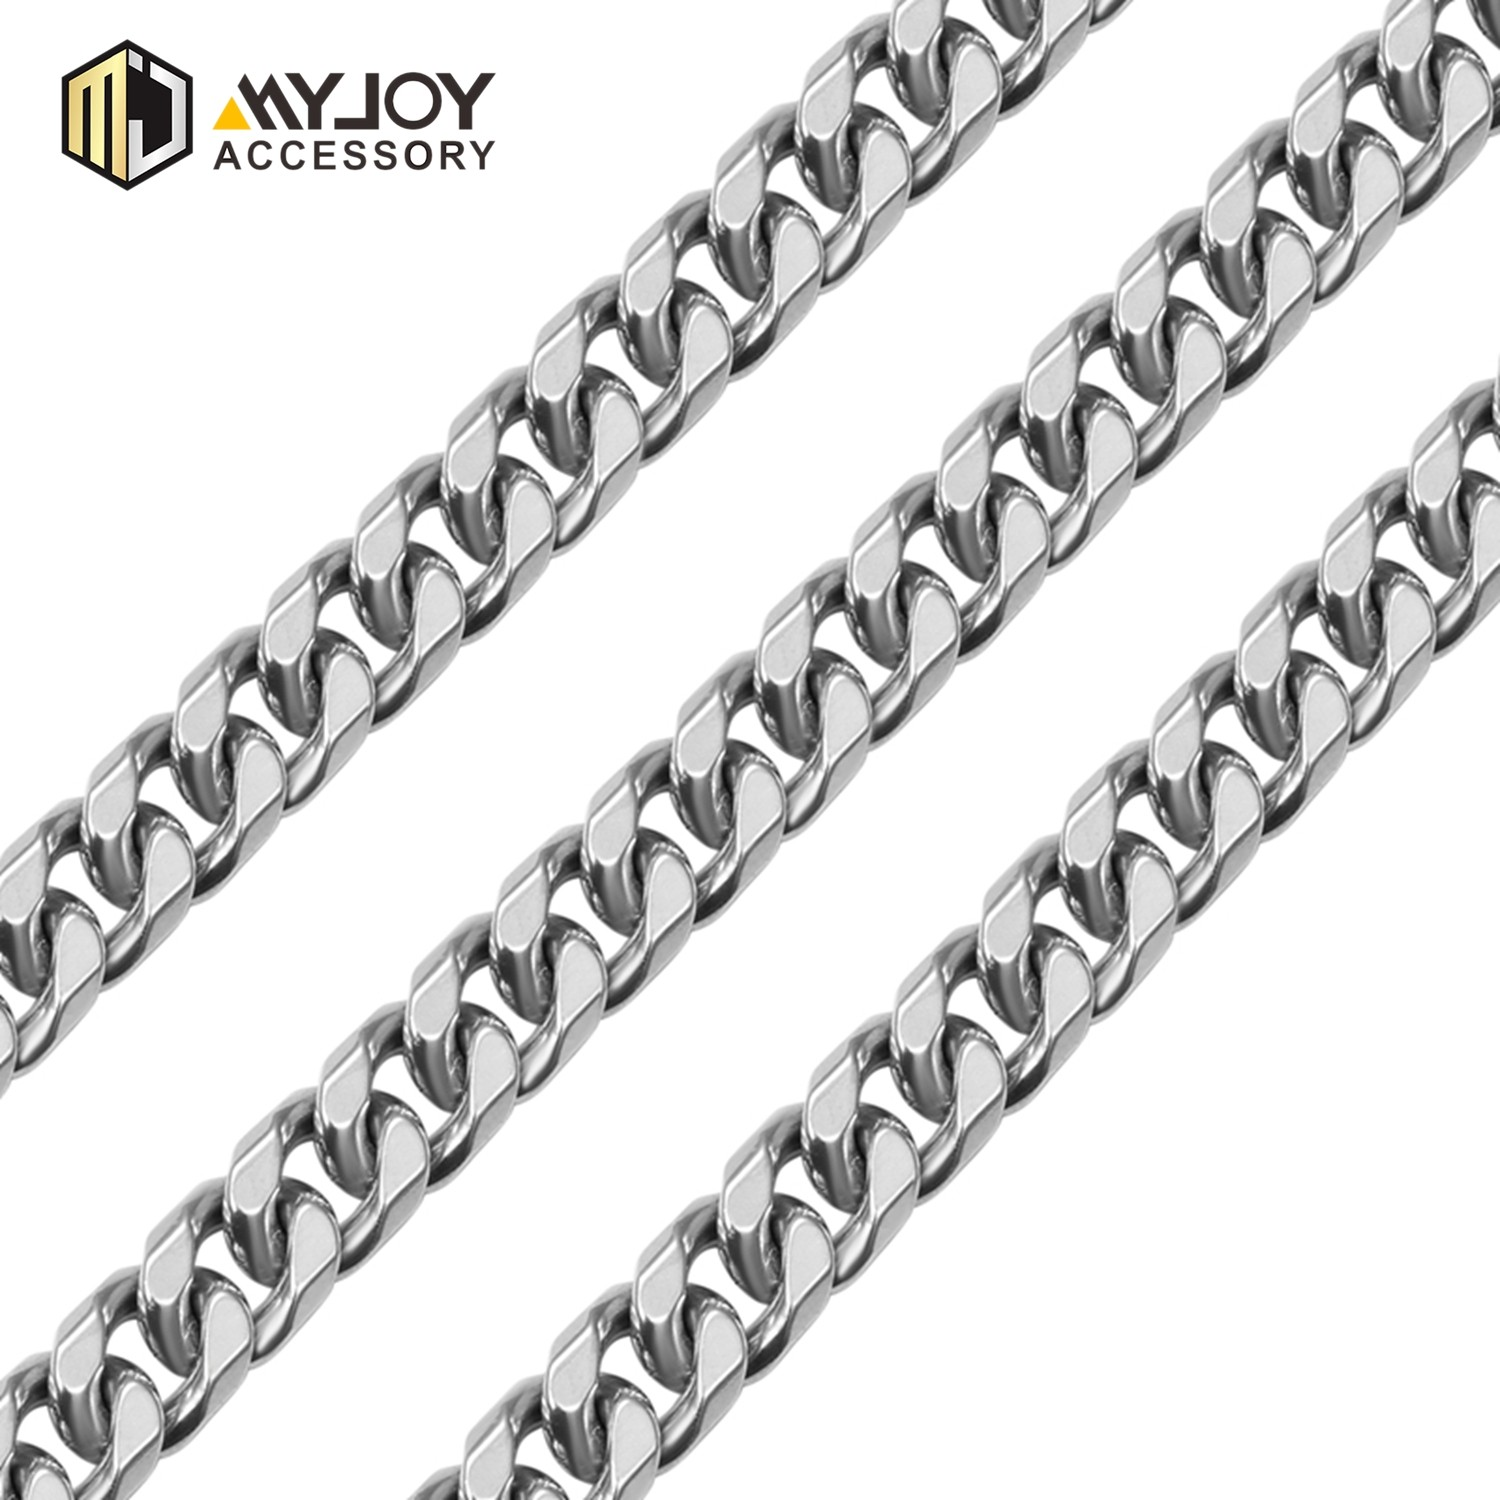 Best handbag strap chain chains Suppliers for bags-3